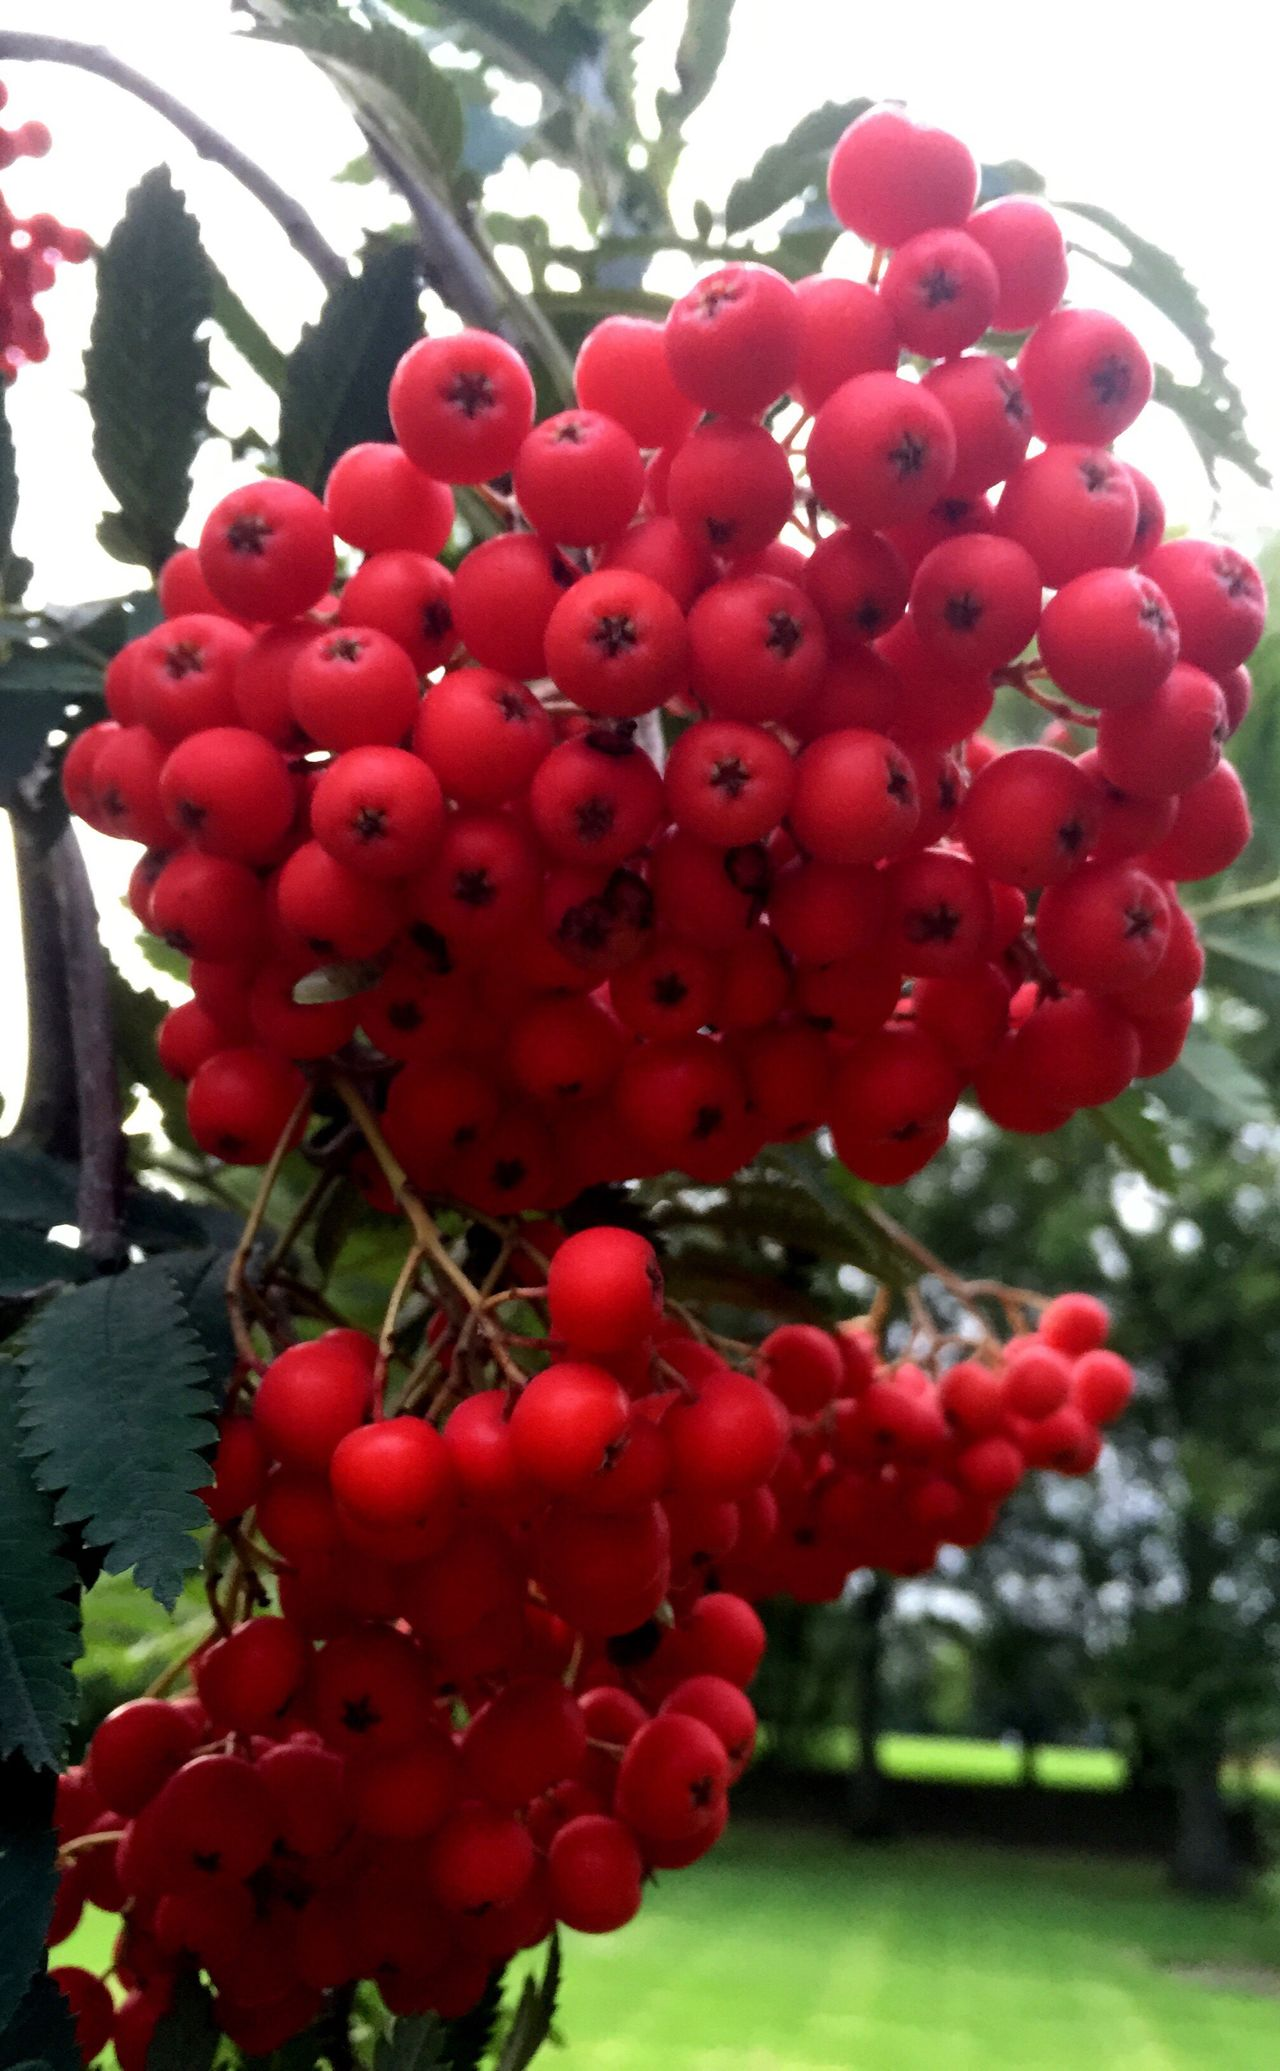 Red Fruit like Berries Abundance Bunch Nature Focus On Foreground Vibrant Color IPhoneography Iphonephotography